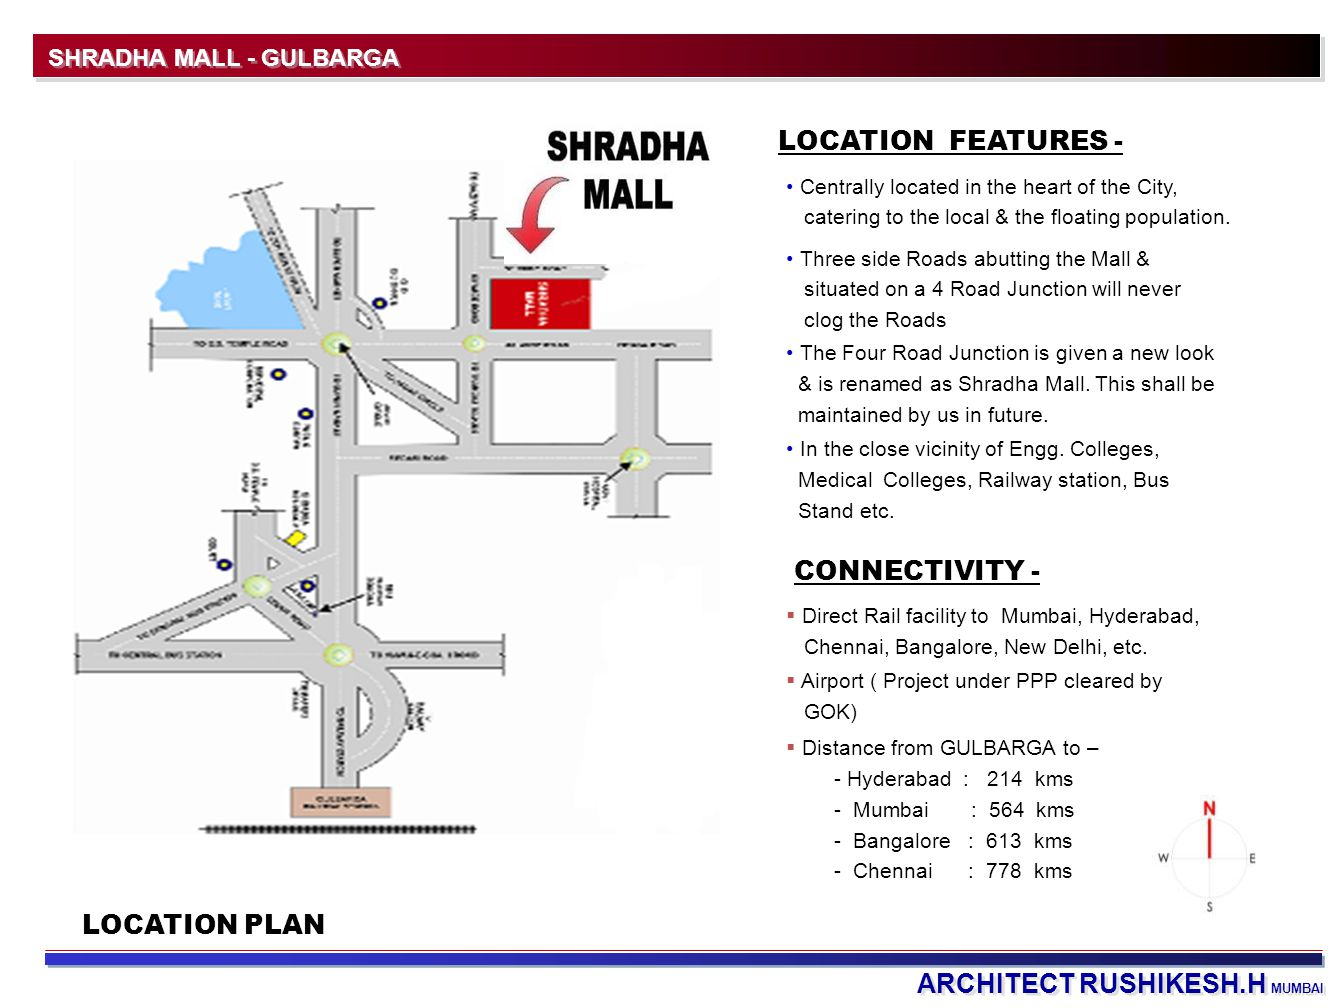 ARCHITECT RUSHIKESH.H MUMBAI SHRADHA MALL - GULBARGA LOCATION PLAN LOCATION FEATURES - Centrally located in the heart of the City, catering to the local & the floating population.